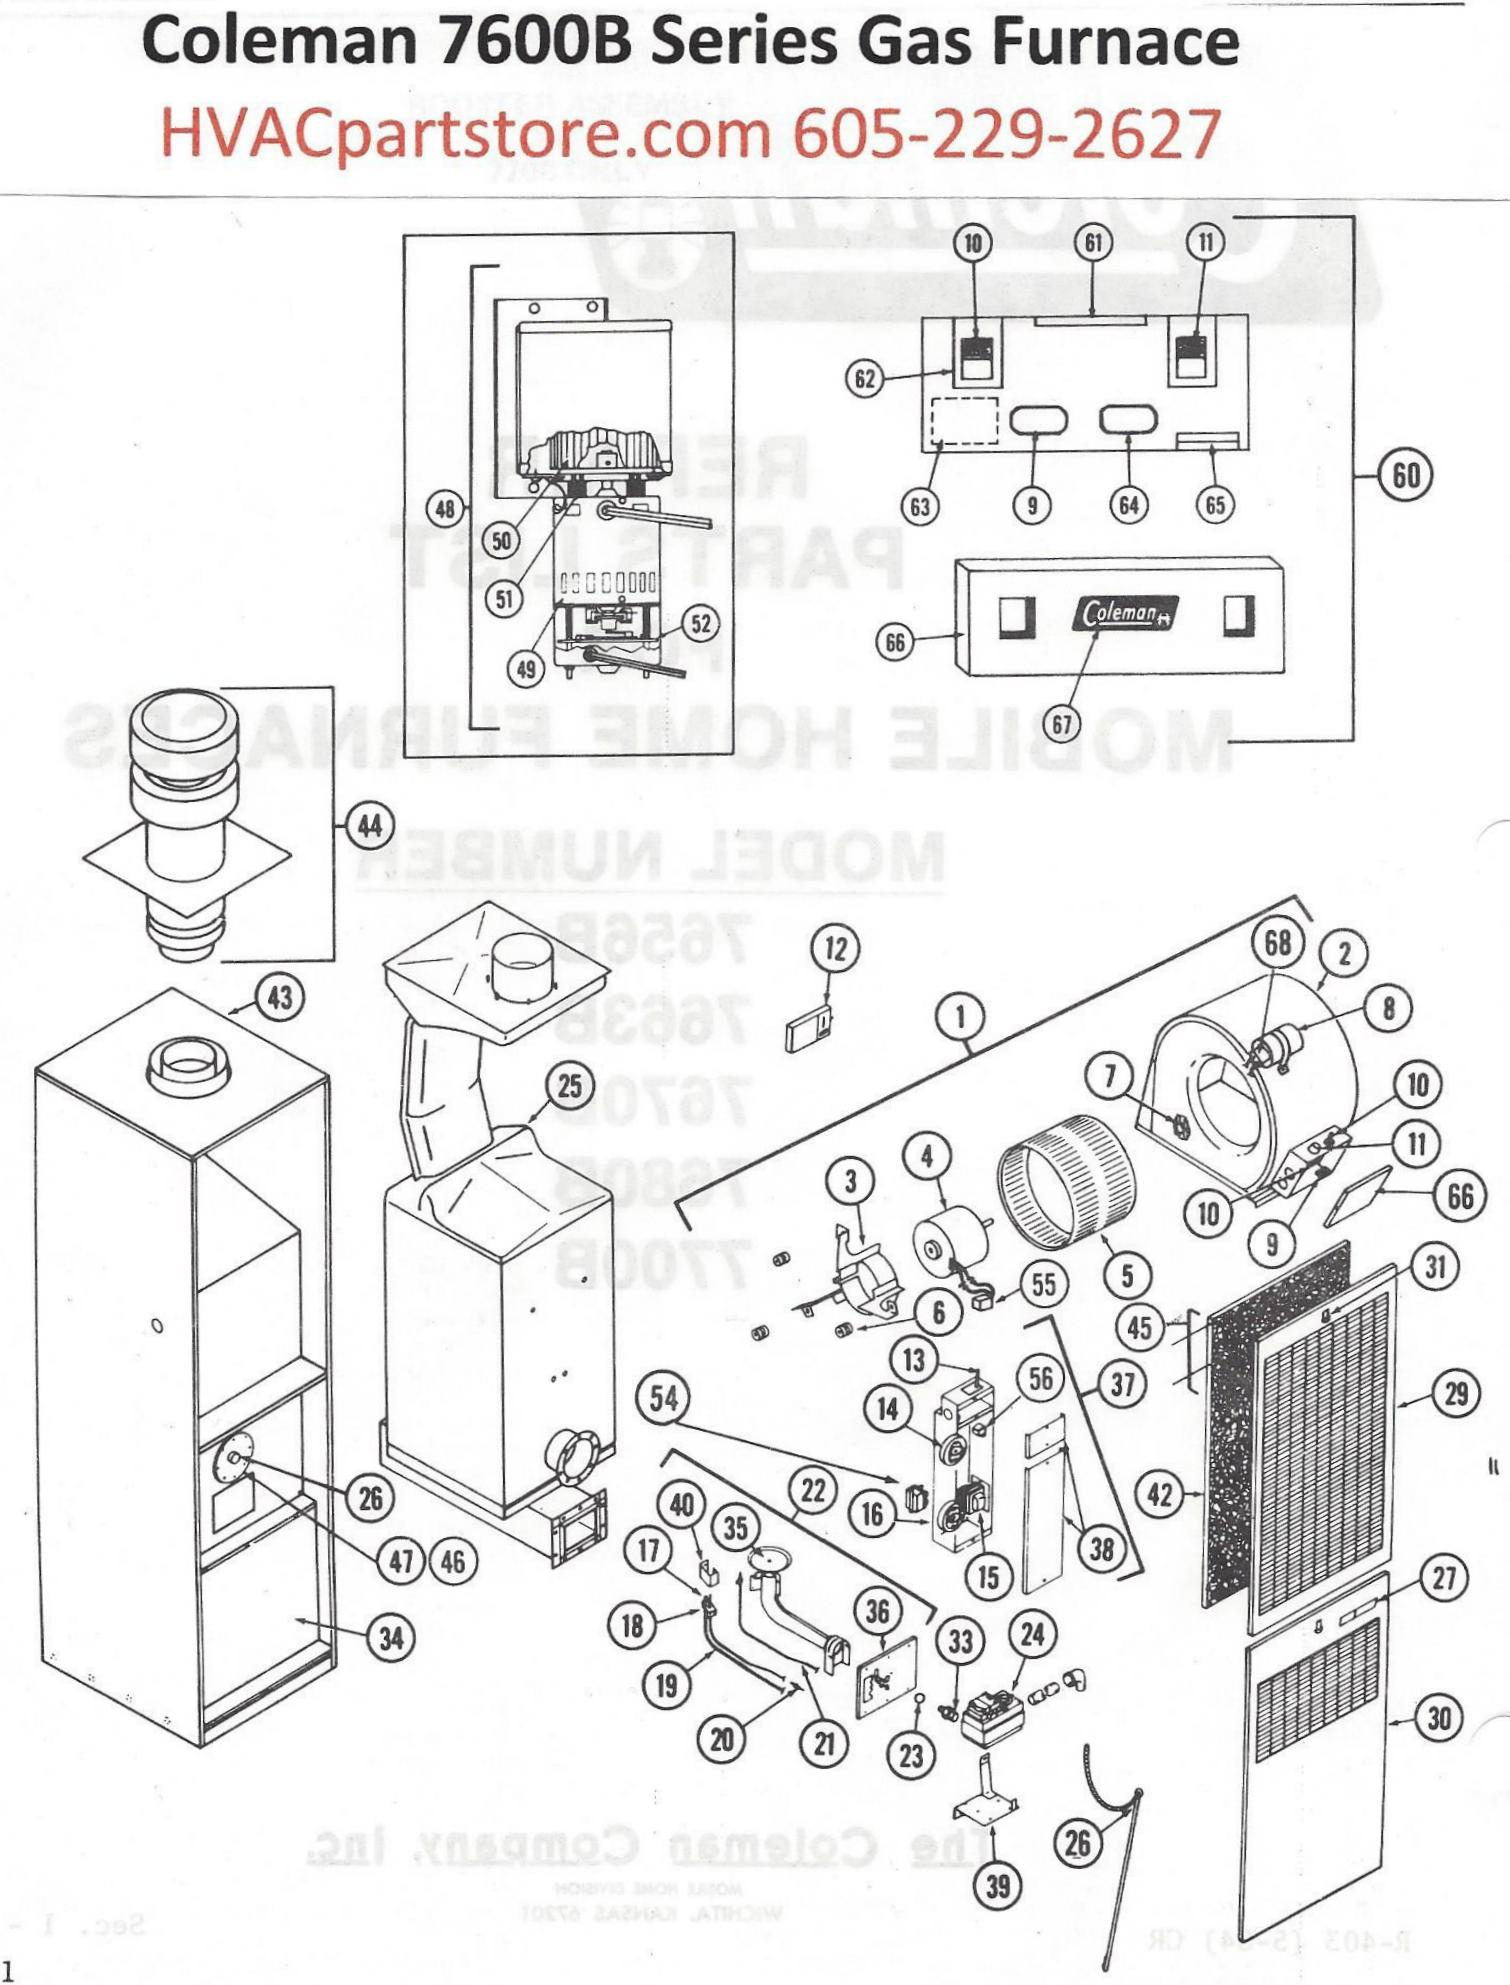 7600BDiagram?3087977773874111912 7656b856 coleman gas furnace parts hvacpartstore coleman furnace wiring diagram at creativeand.co